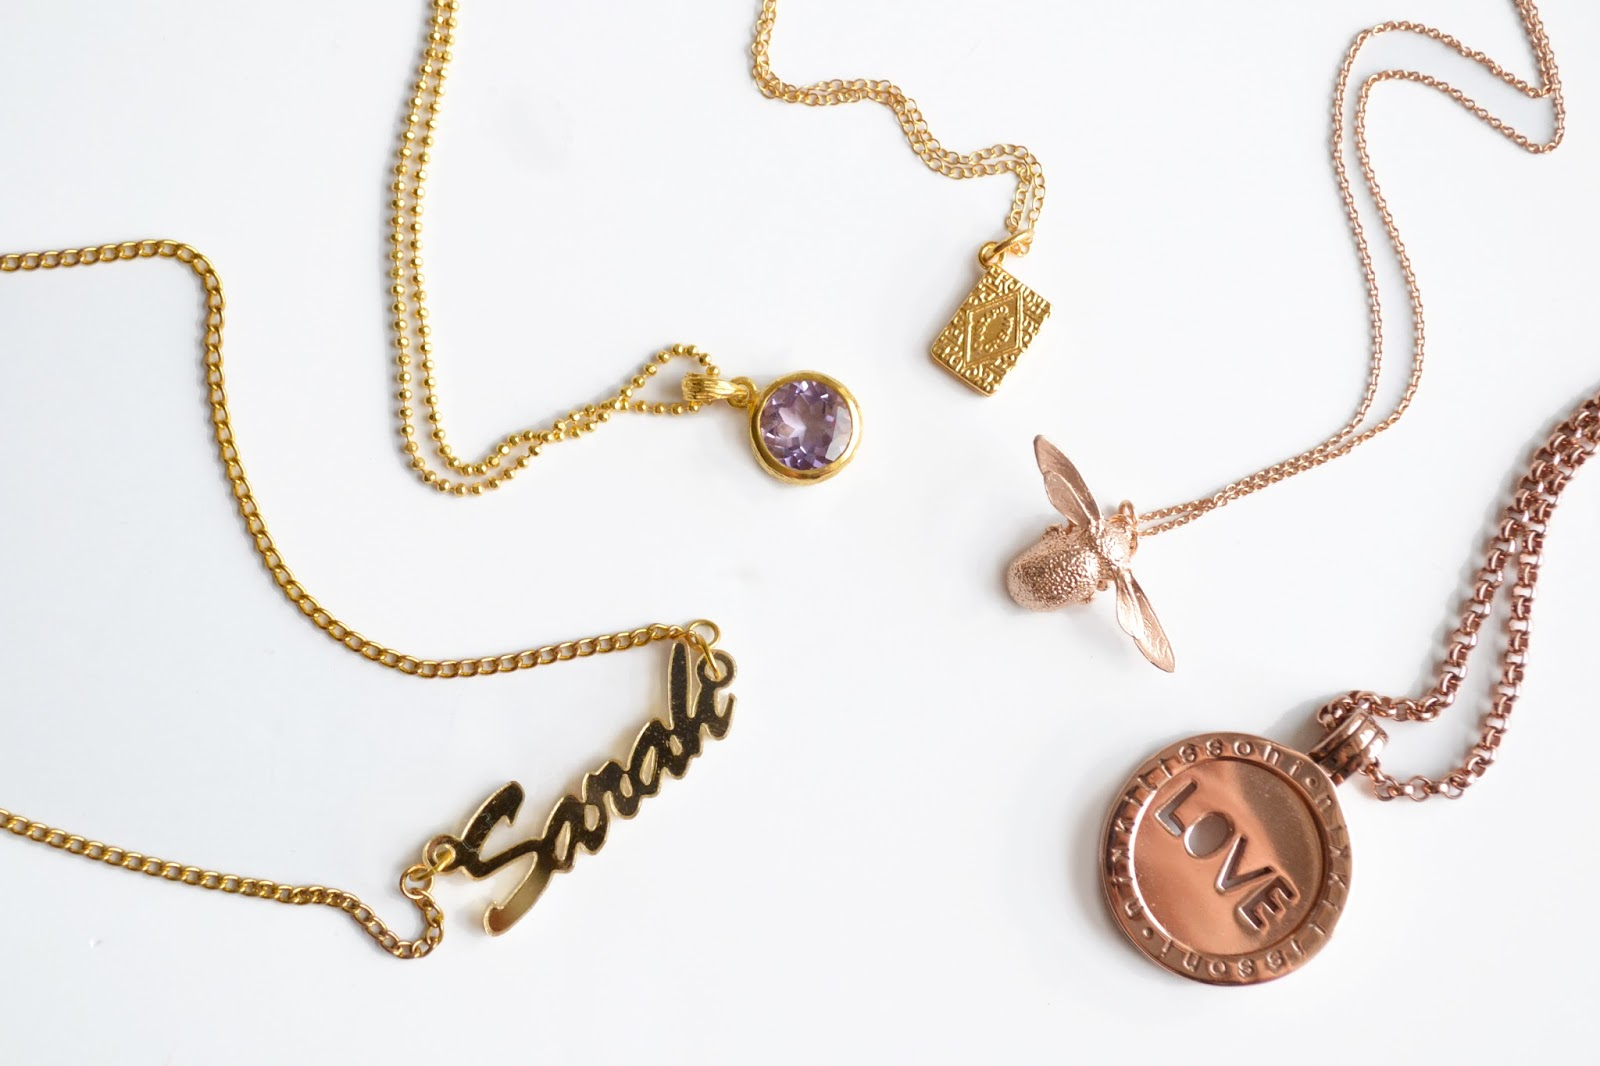 gold necklaces, fashionable gold necklaces